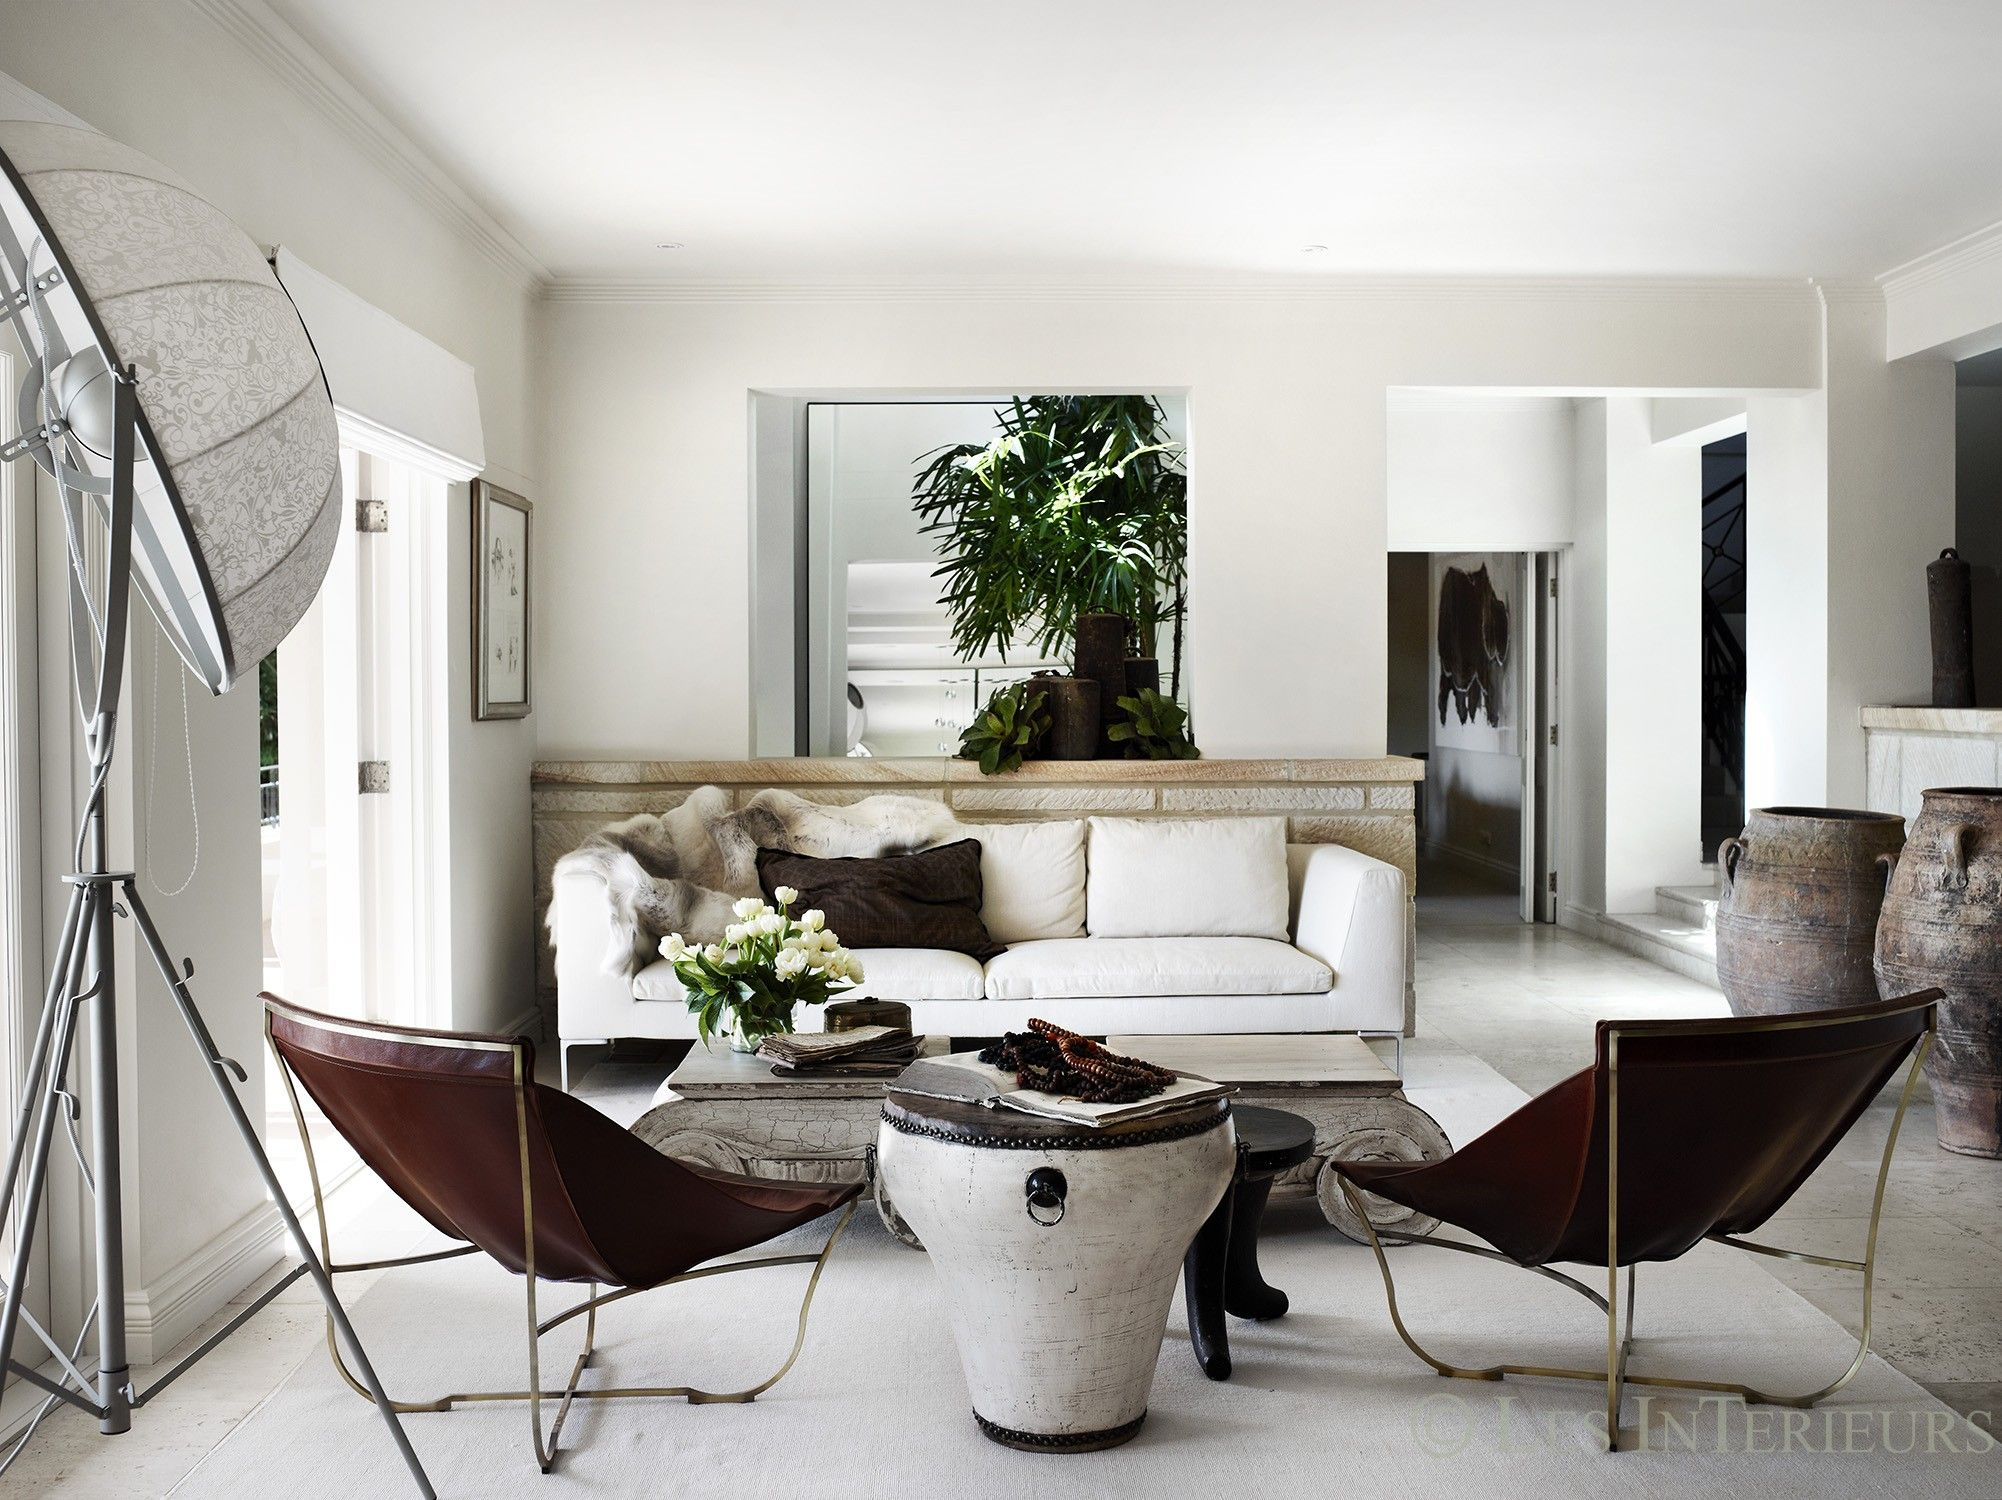 Les Interieurs Interior Design by Pamela Makin Sydney De Wet